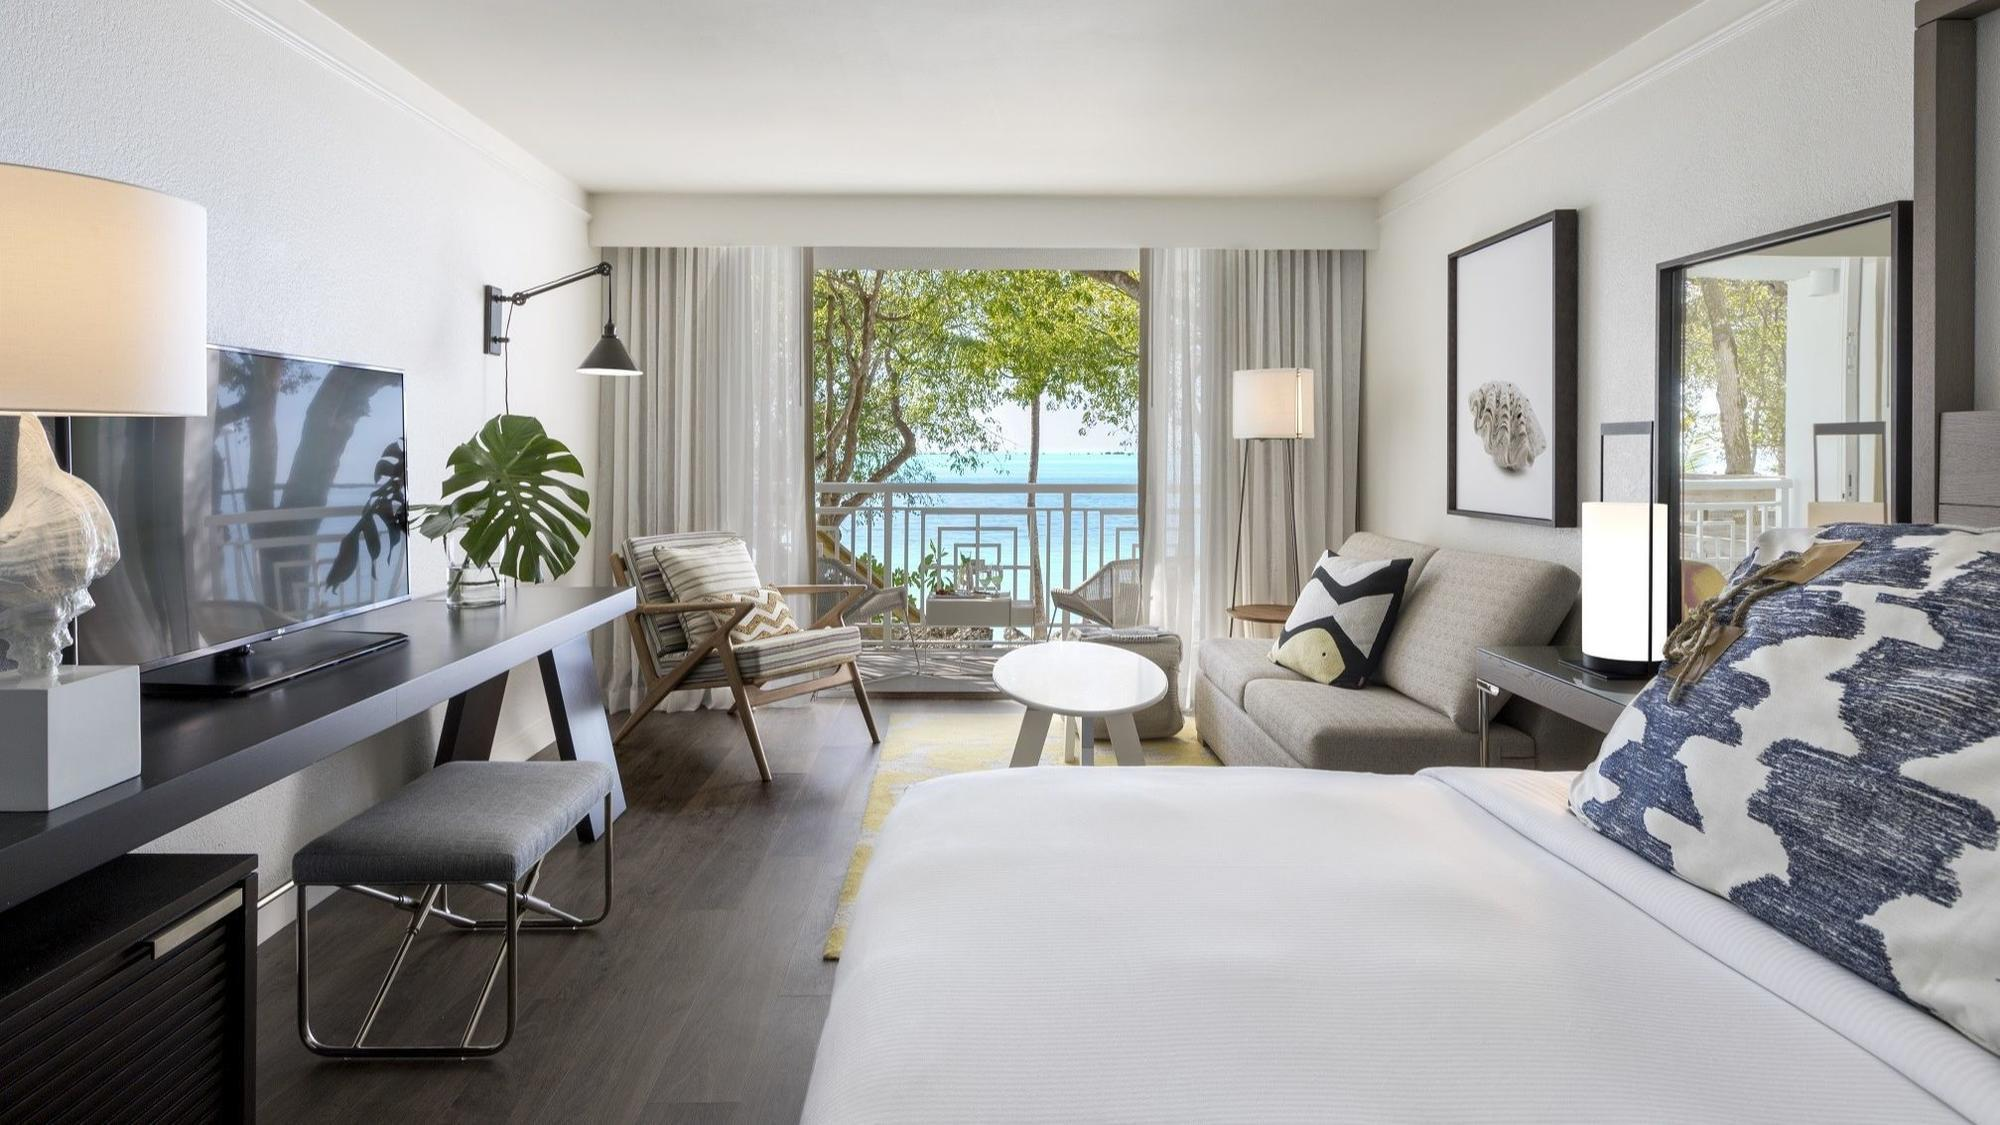 Luxury Resort Baker S Cay Opening This Fall In Key Largo